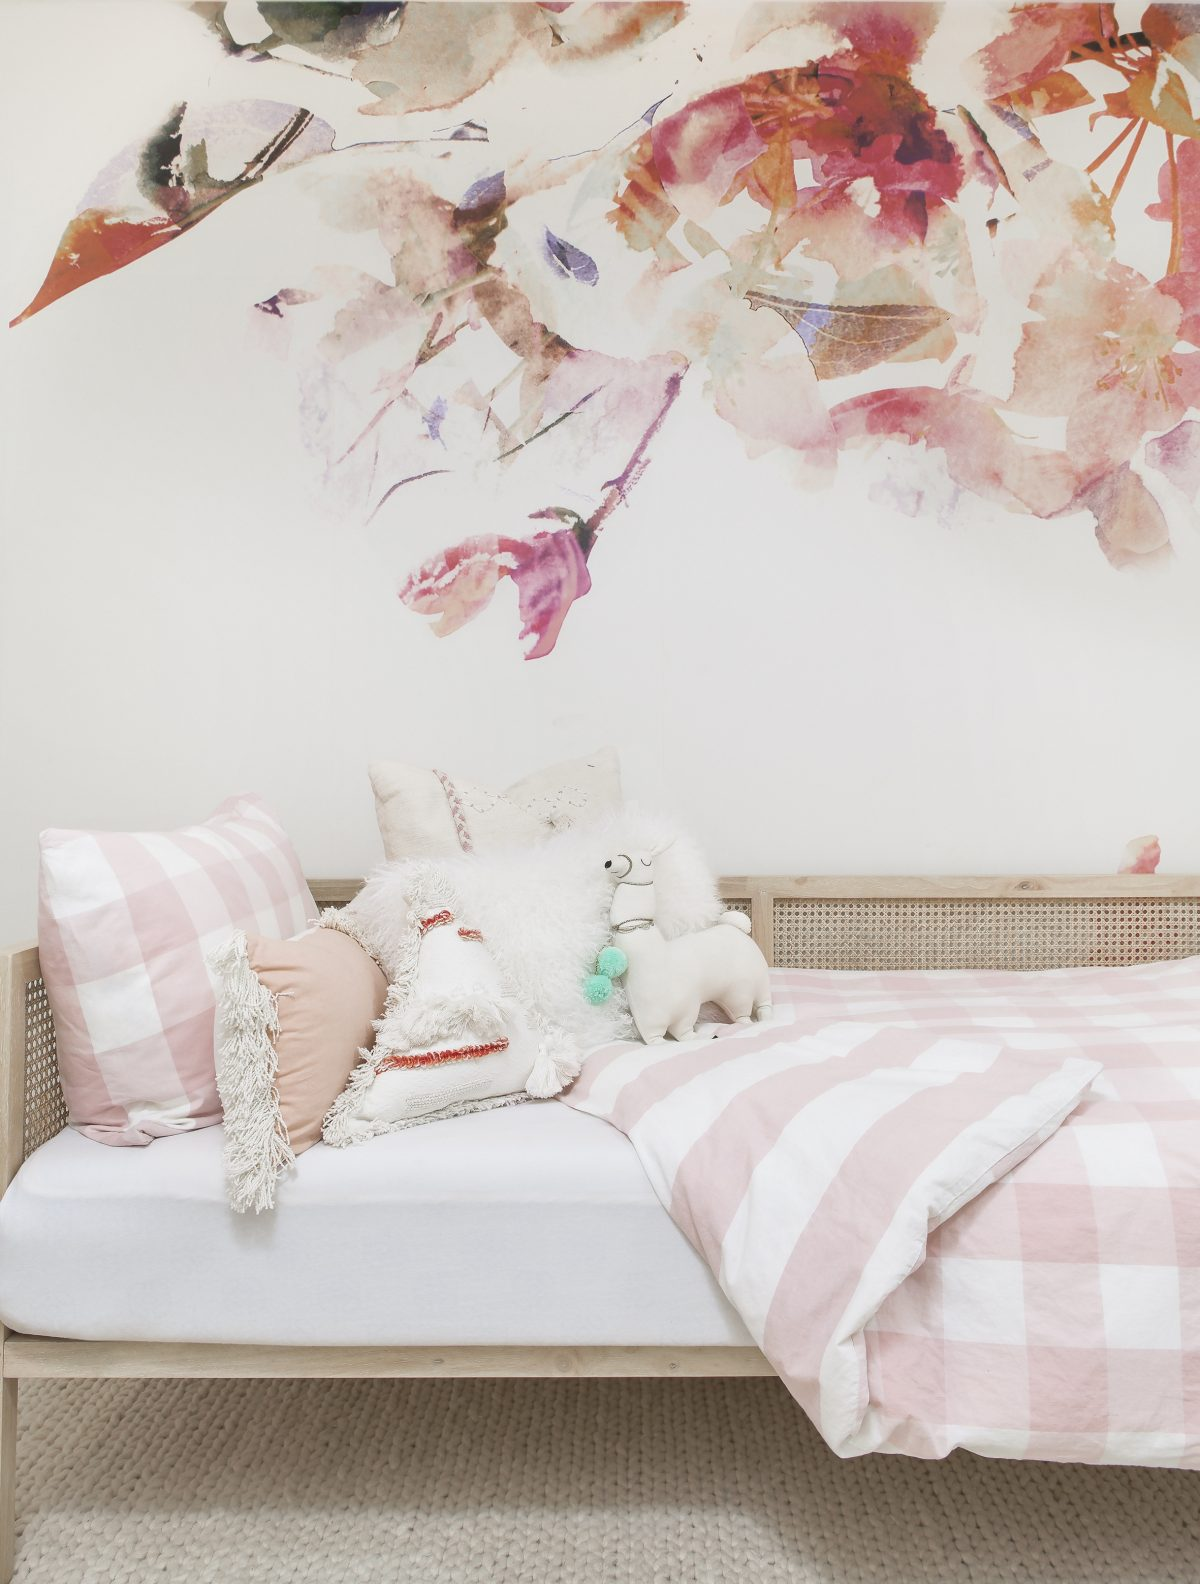 Get The Look: Project Woburn – Ari's Bedroom